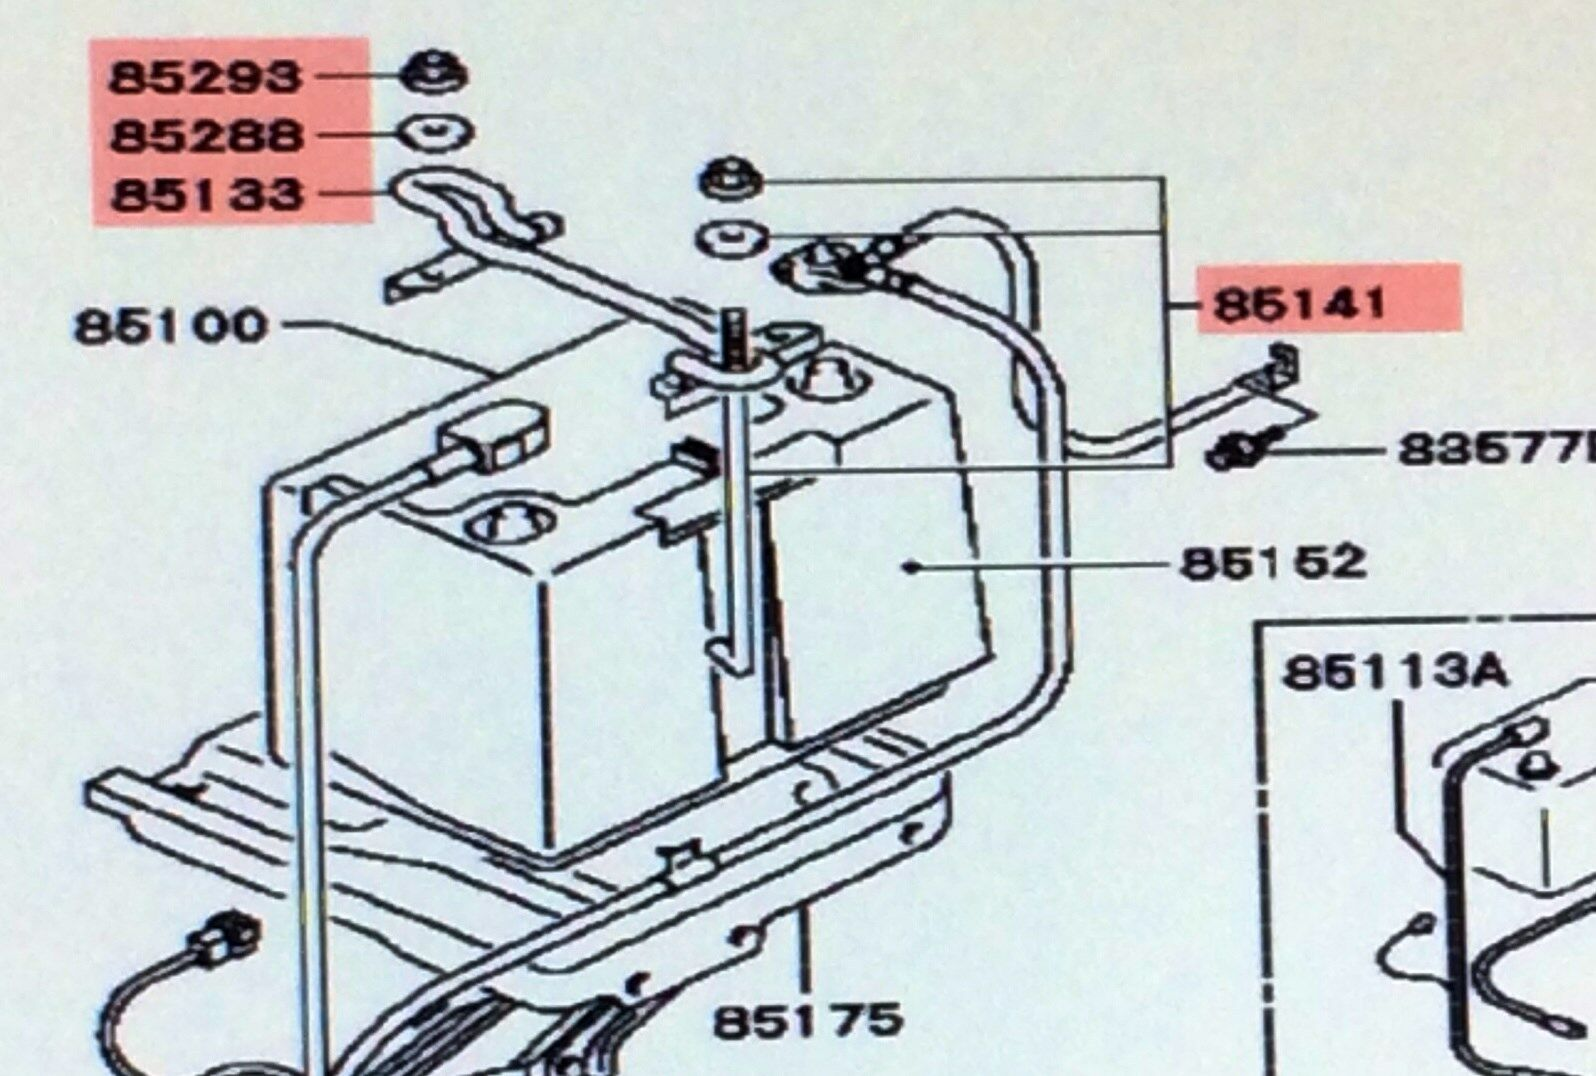 s l1600 intoxalock wiring block diagram conventional fire alarm wiring intoxalock wiring diagram at gsmx.co